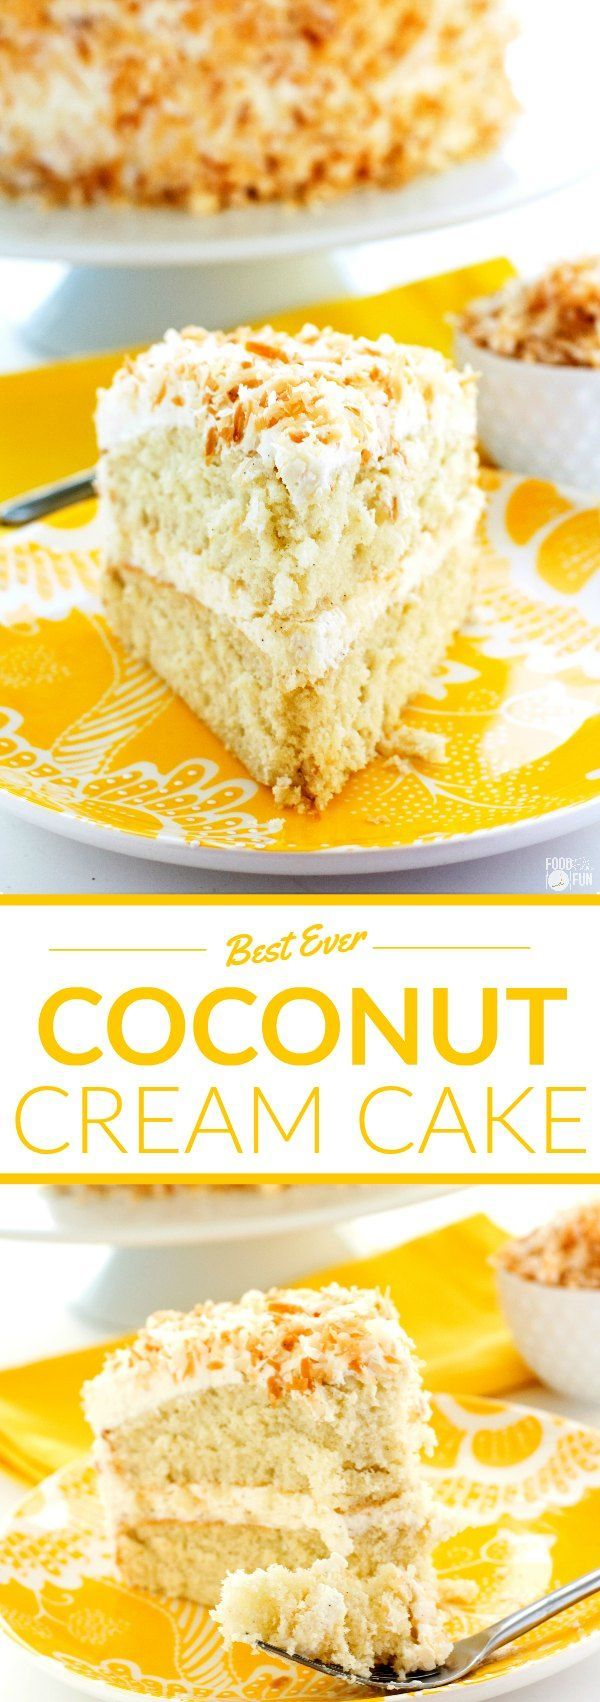 Coconut Cream Cake ~ So tender, and it is deliciously covered in Coconut Swiss Meringue Buttercream and beautifully toasted coconut.